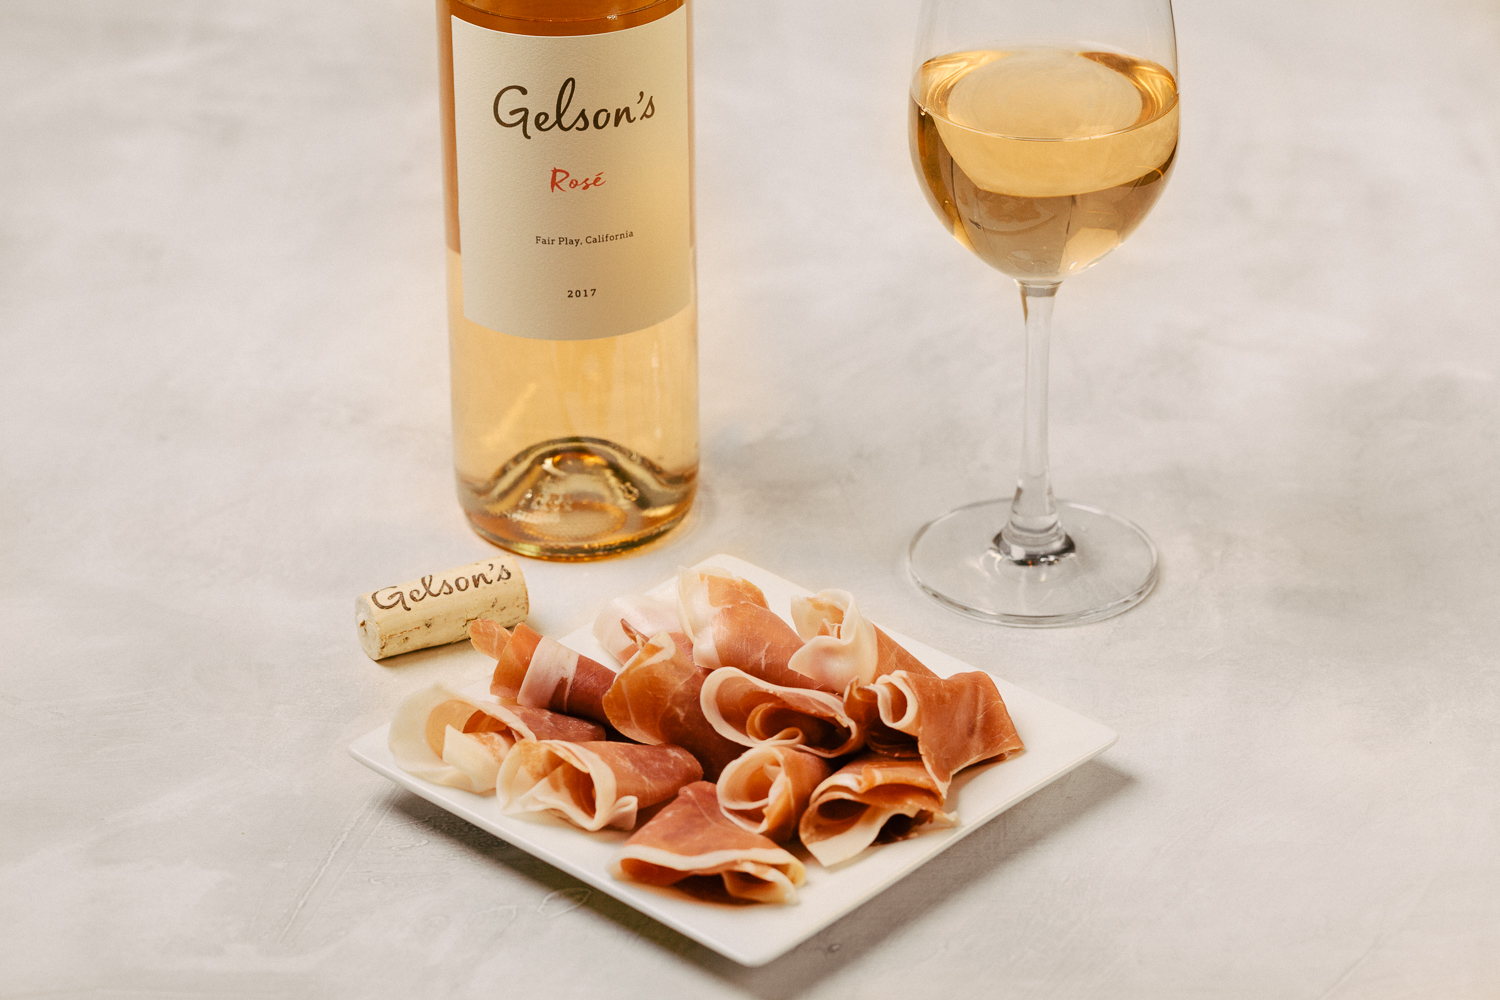 Gelson's Rose Wine